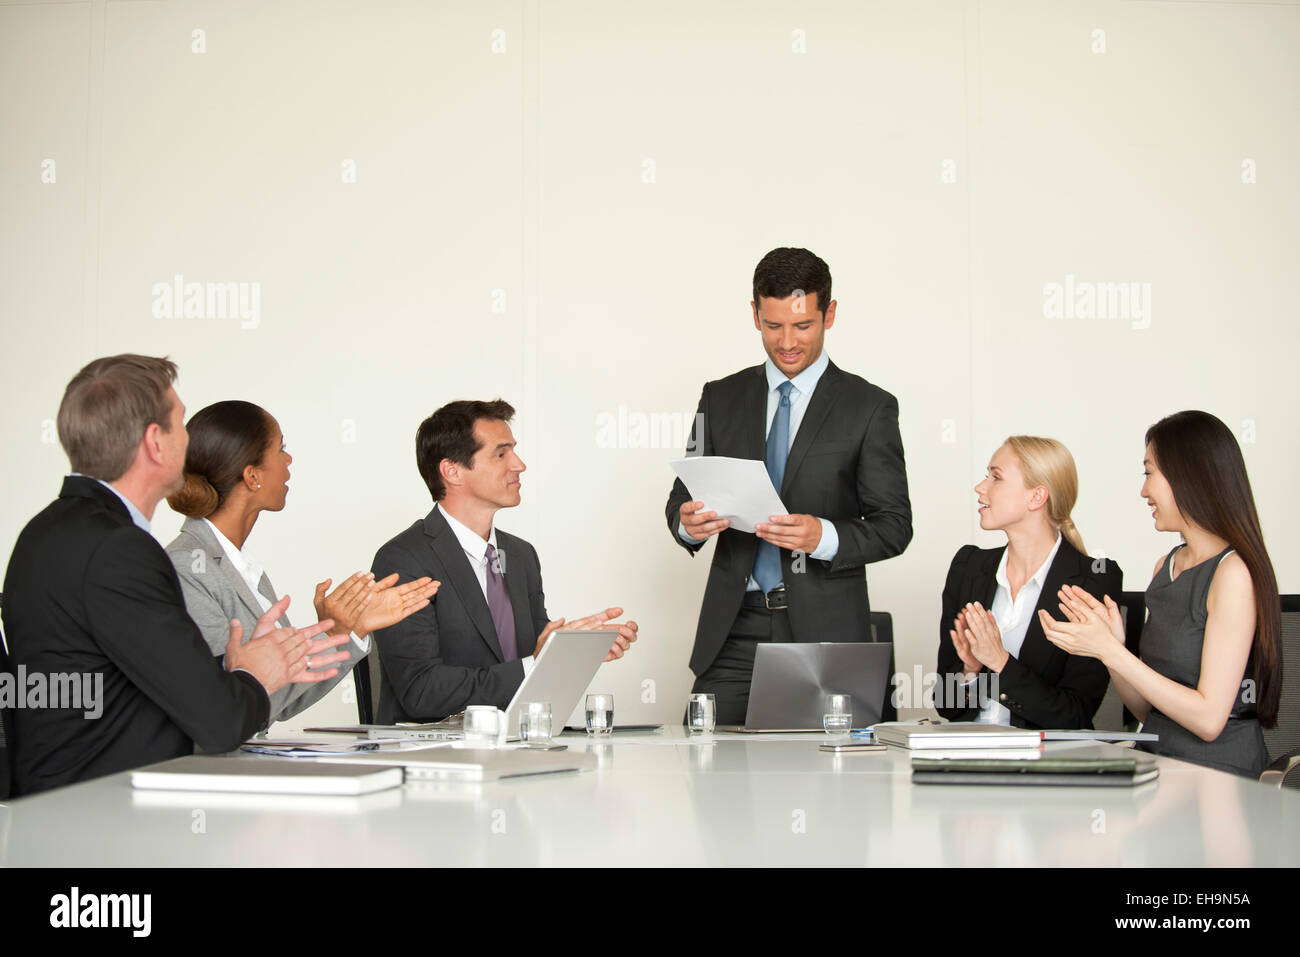 Businesspeople applauding at meeting - Stock Image